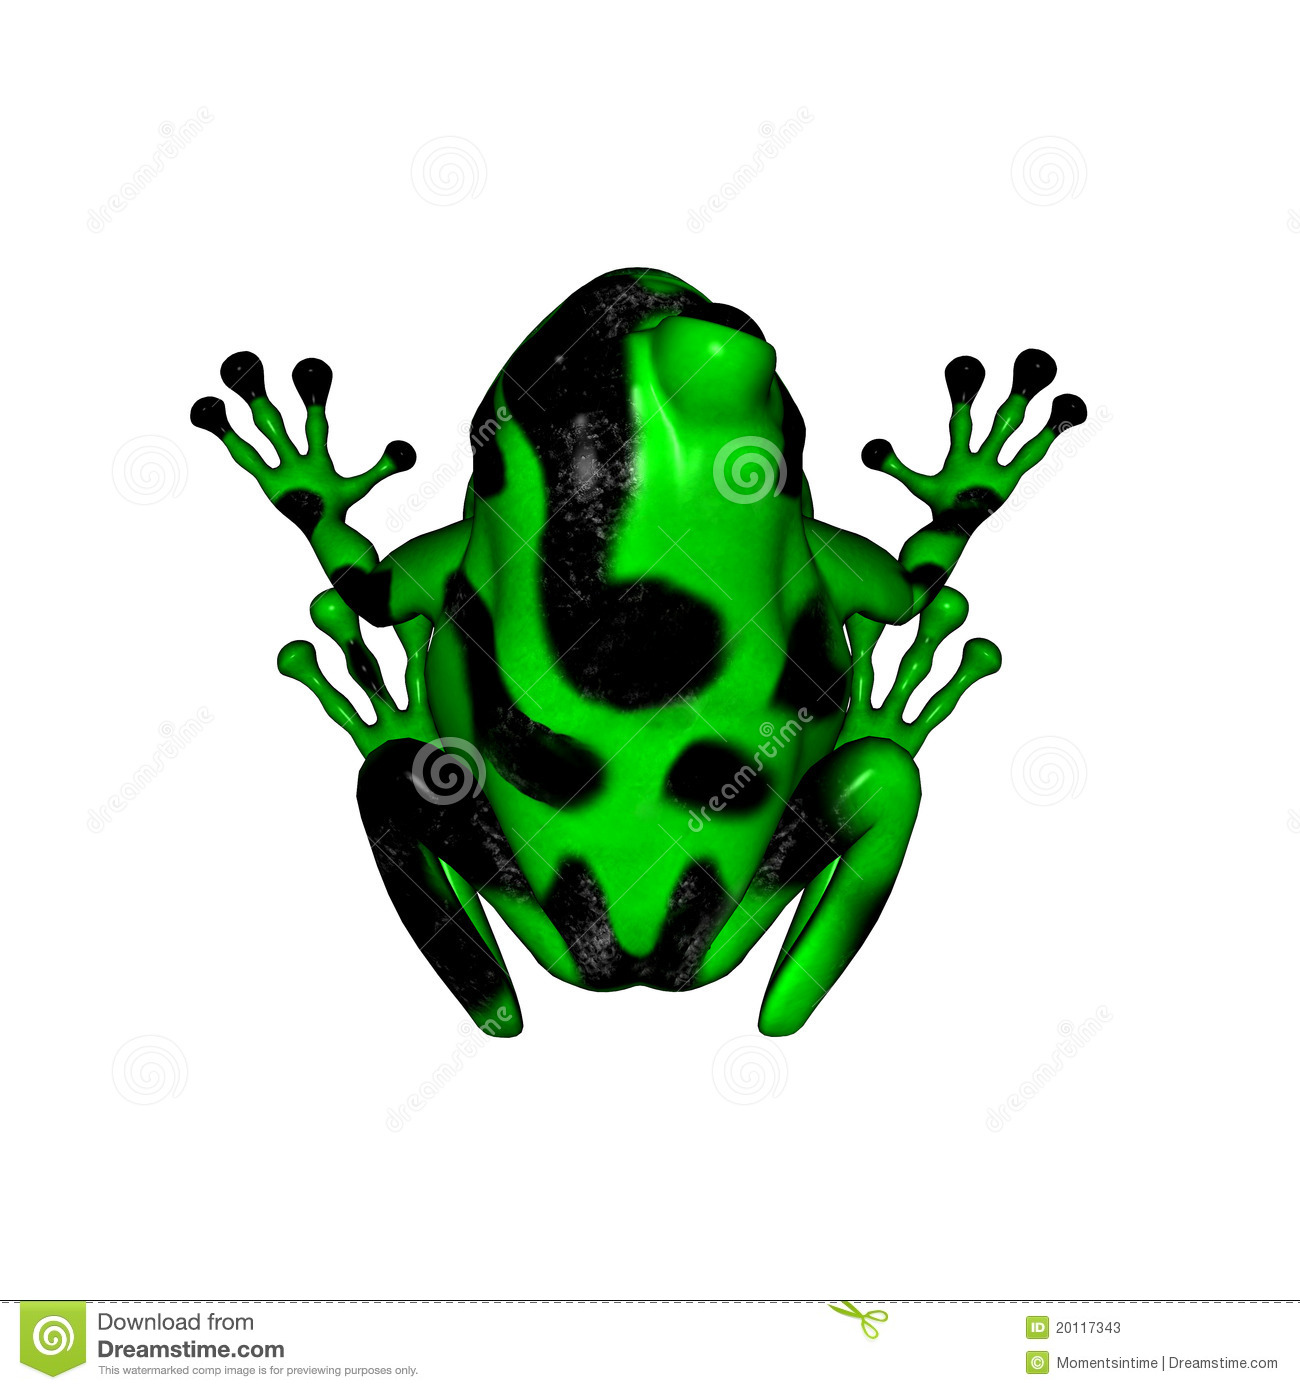 Poison dart frog clip art - photo#3